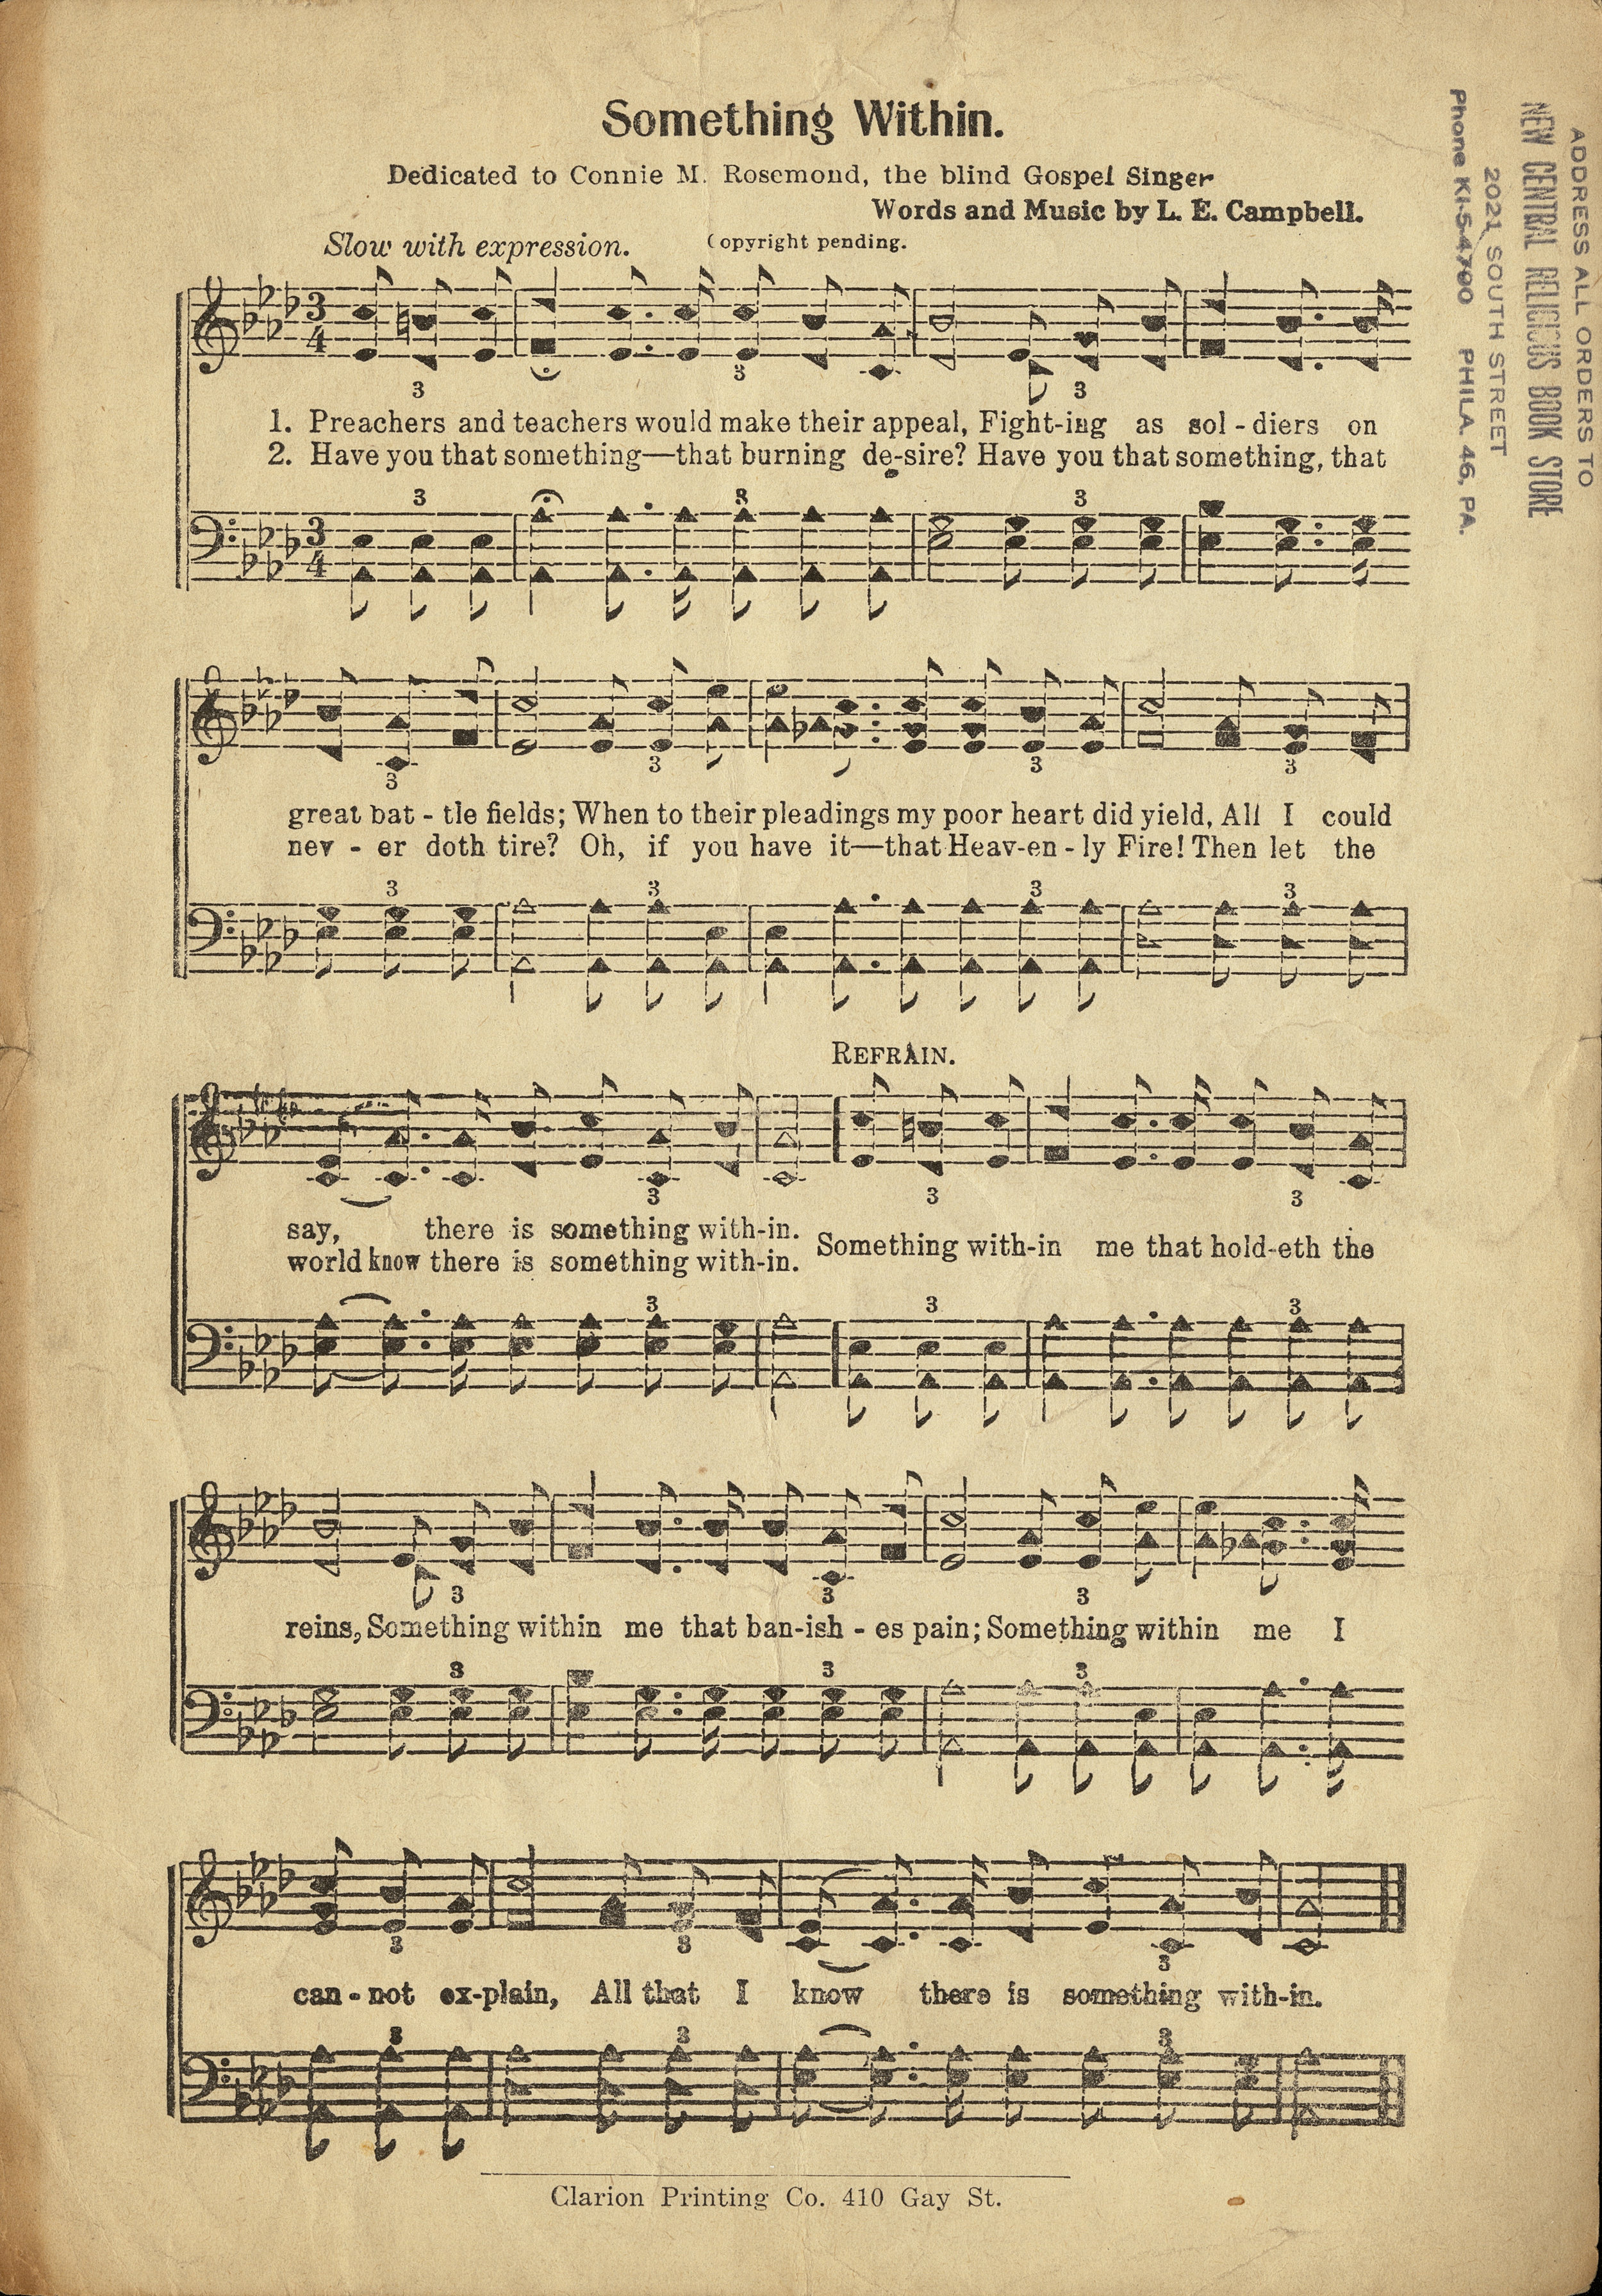 Fig. 1.  Emory University, Stuart A. Rose Library, African American Sheet Music Collection, Box 2, Folder 45.